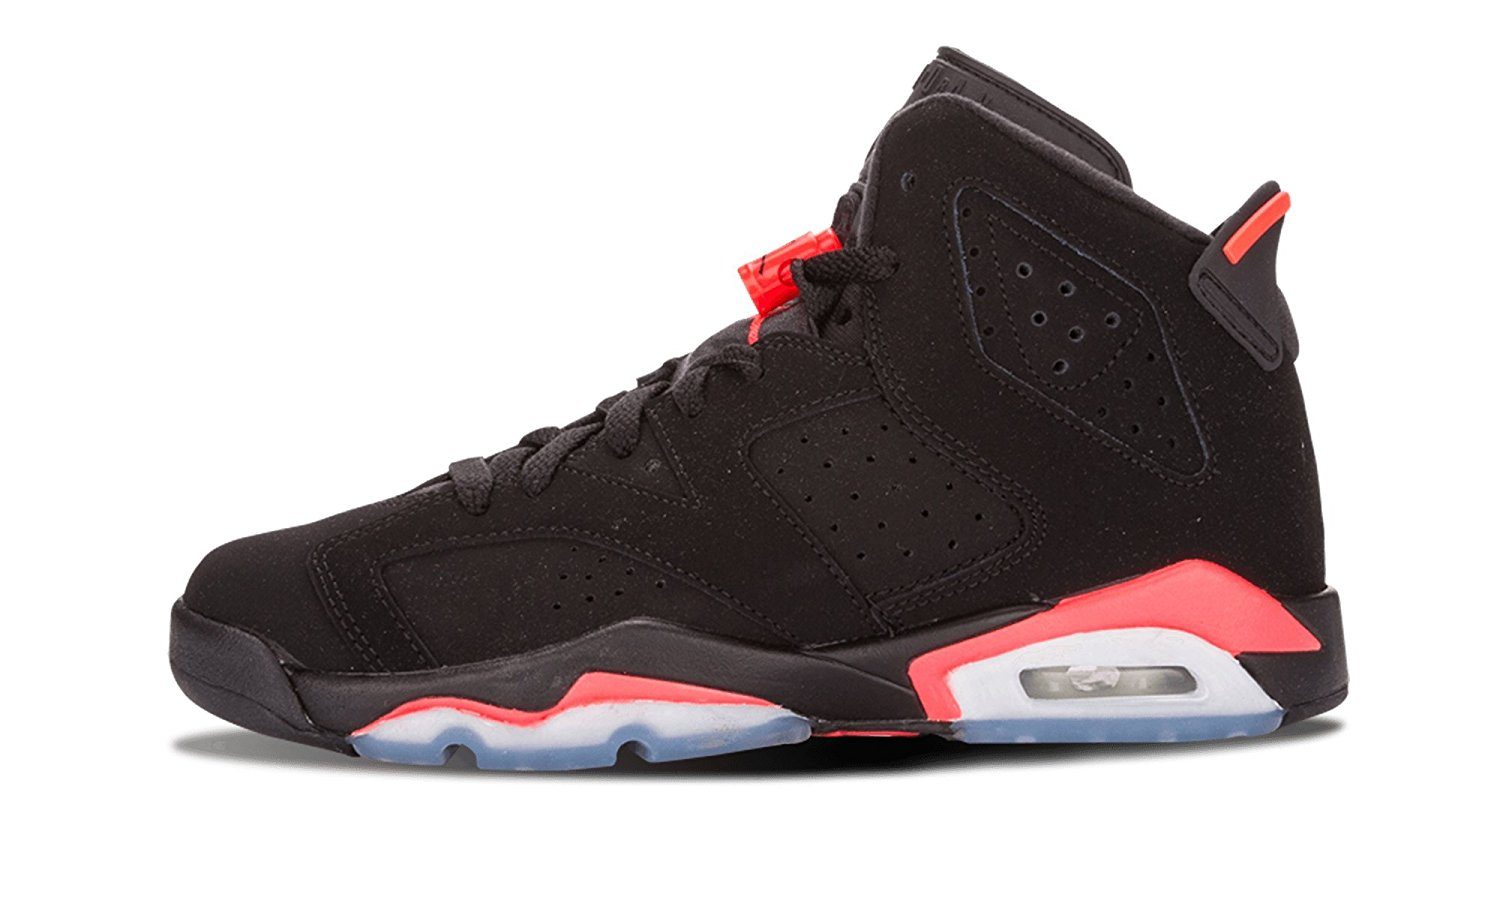 buy popular 79c54 fc08f Get Quotations · Nike Boys Air Jordan 6 Retro BG Infrared Suede Basketball  Shoes